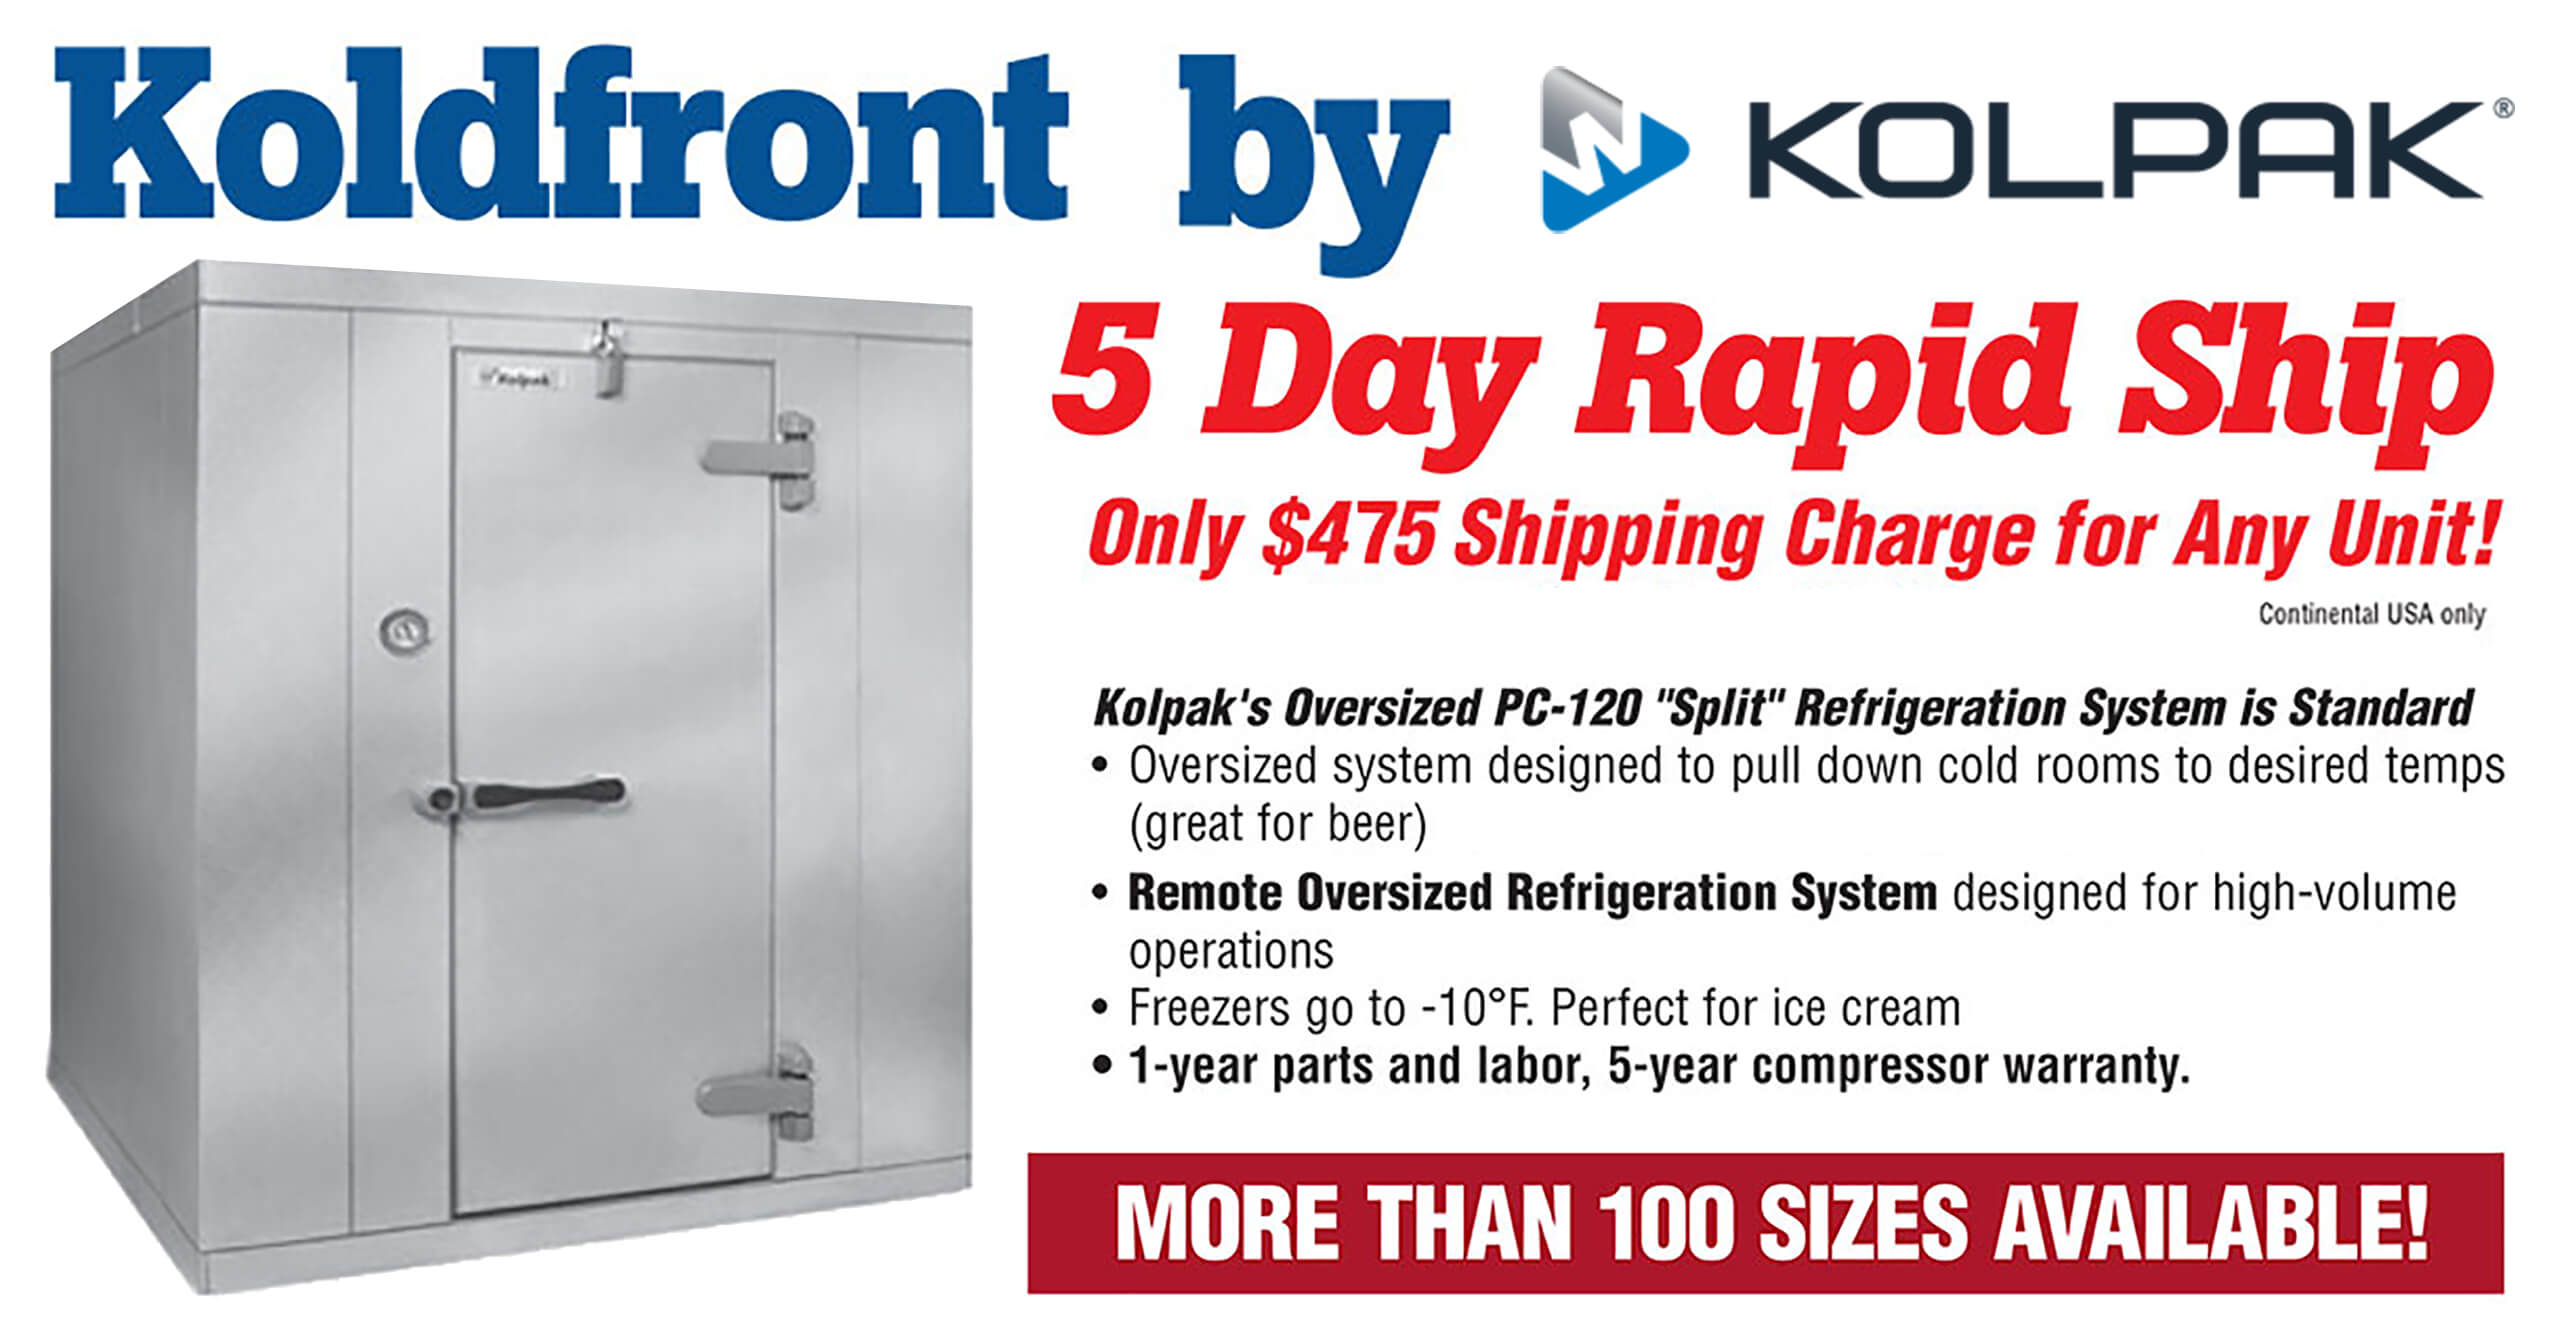 Koldfront by Kolpak Flat Rate Shipping